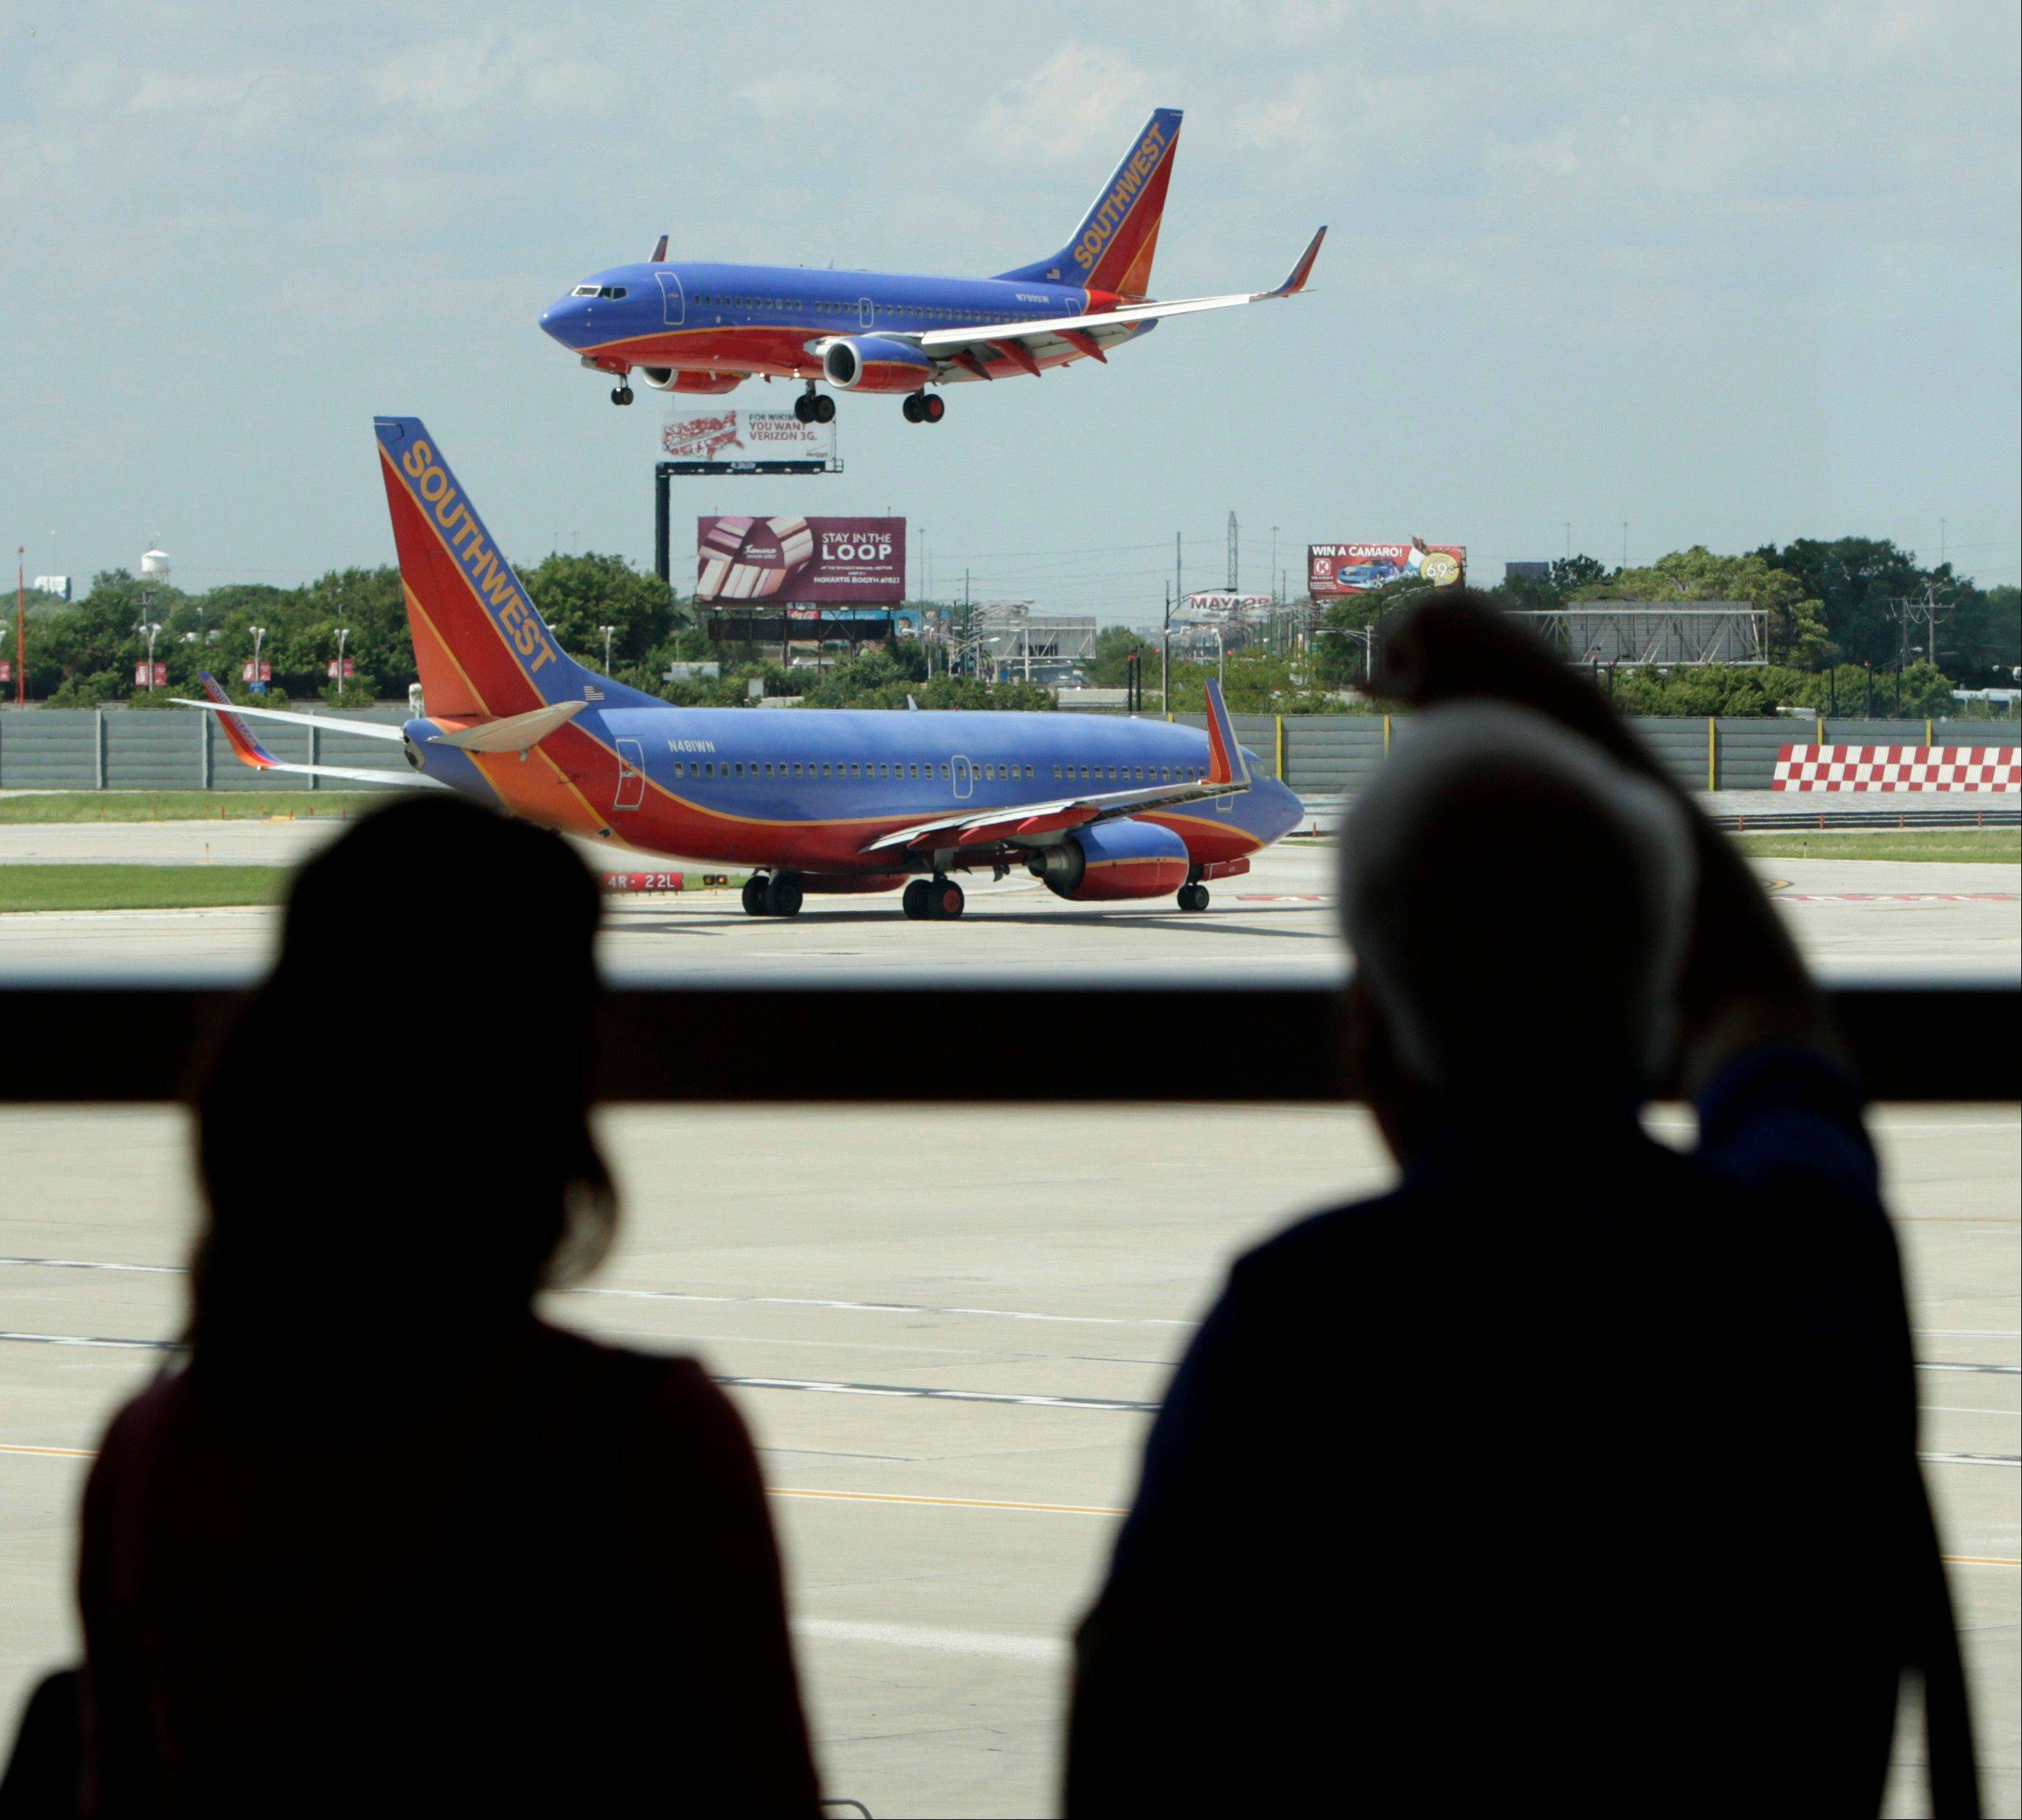 Southwest Airlines passengers watch as one plane waits to takeoff and another lands at Midway International Airport in Chicago. Mayor Rahm Emanuel has decided not to move forward with plans to lease Midway International Airport.